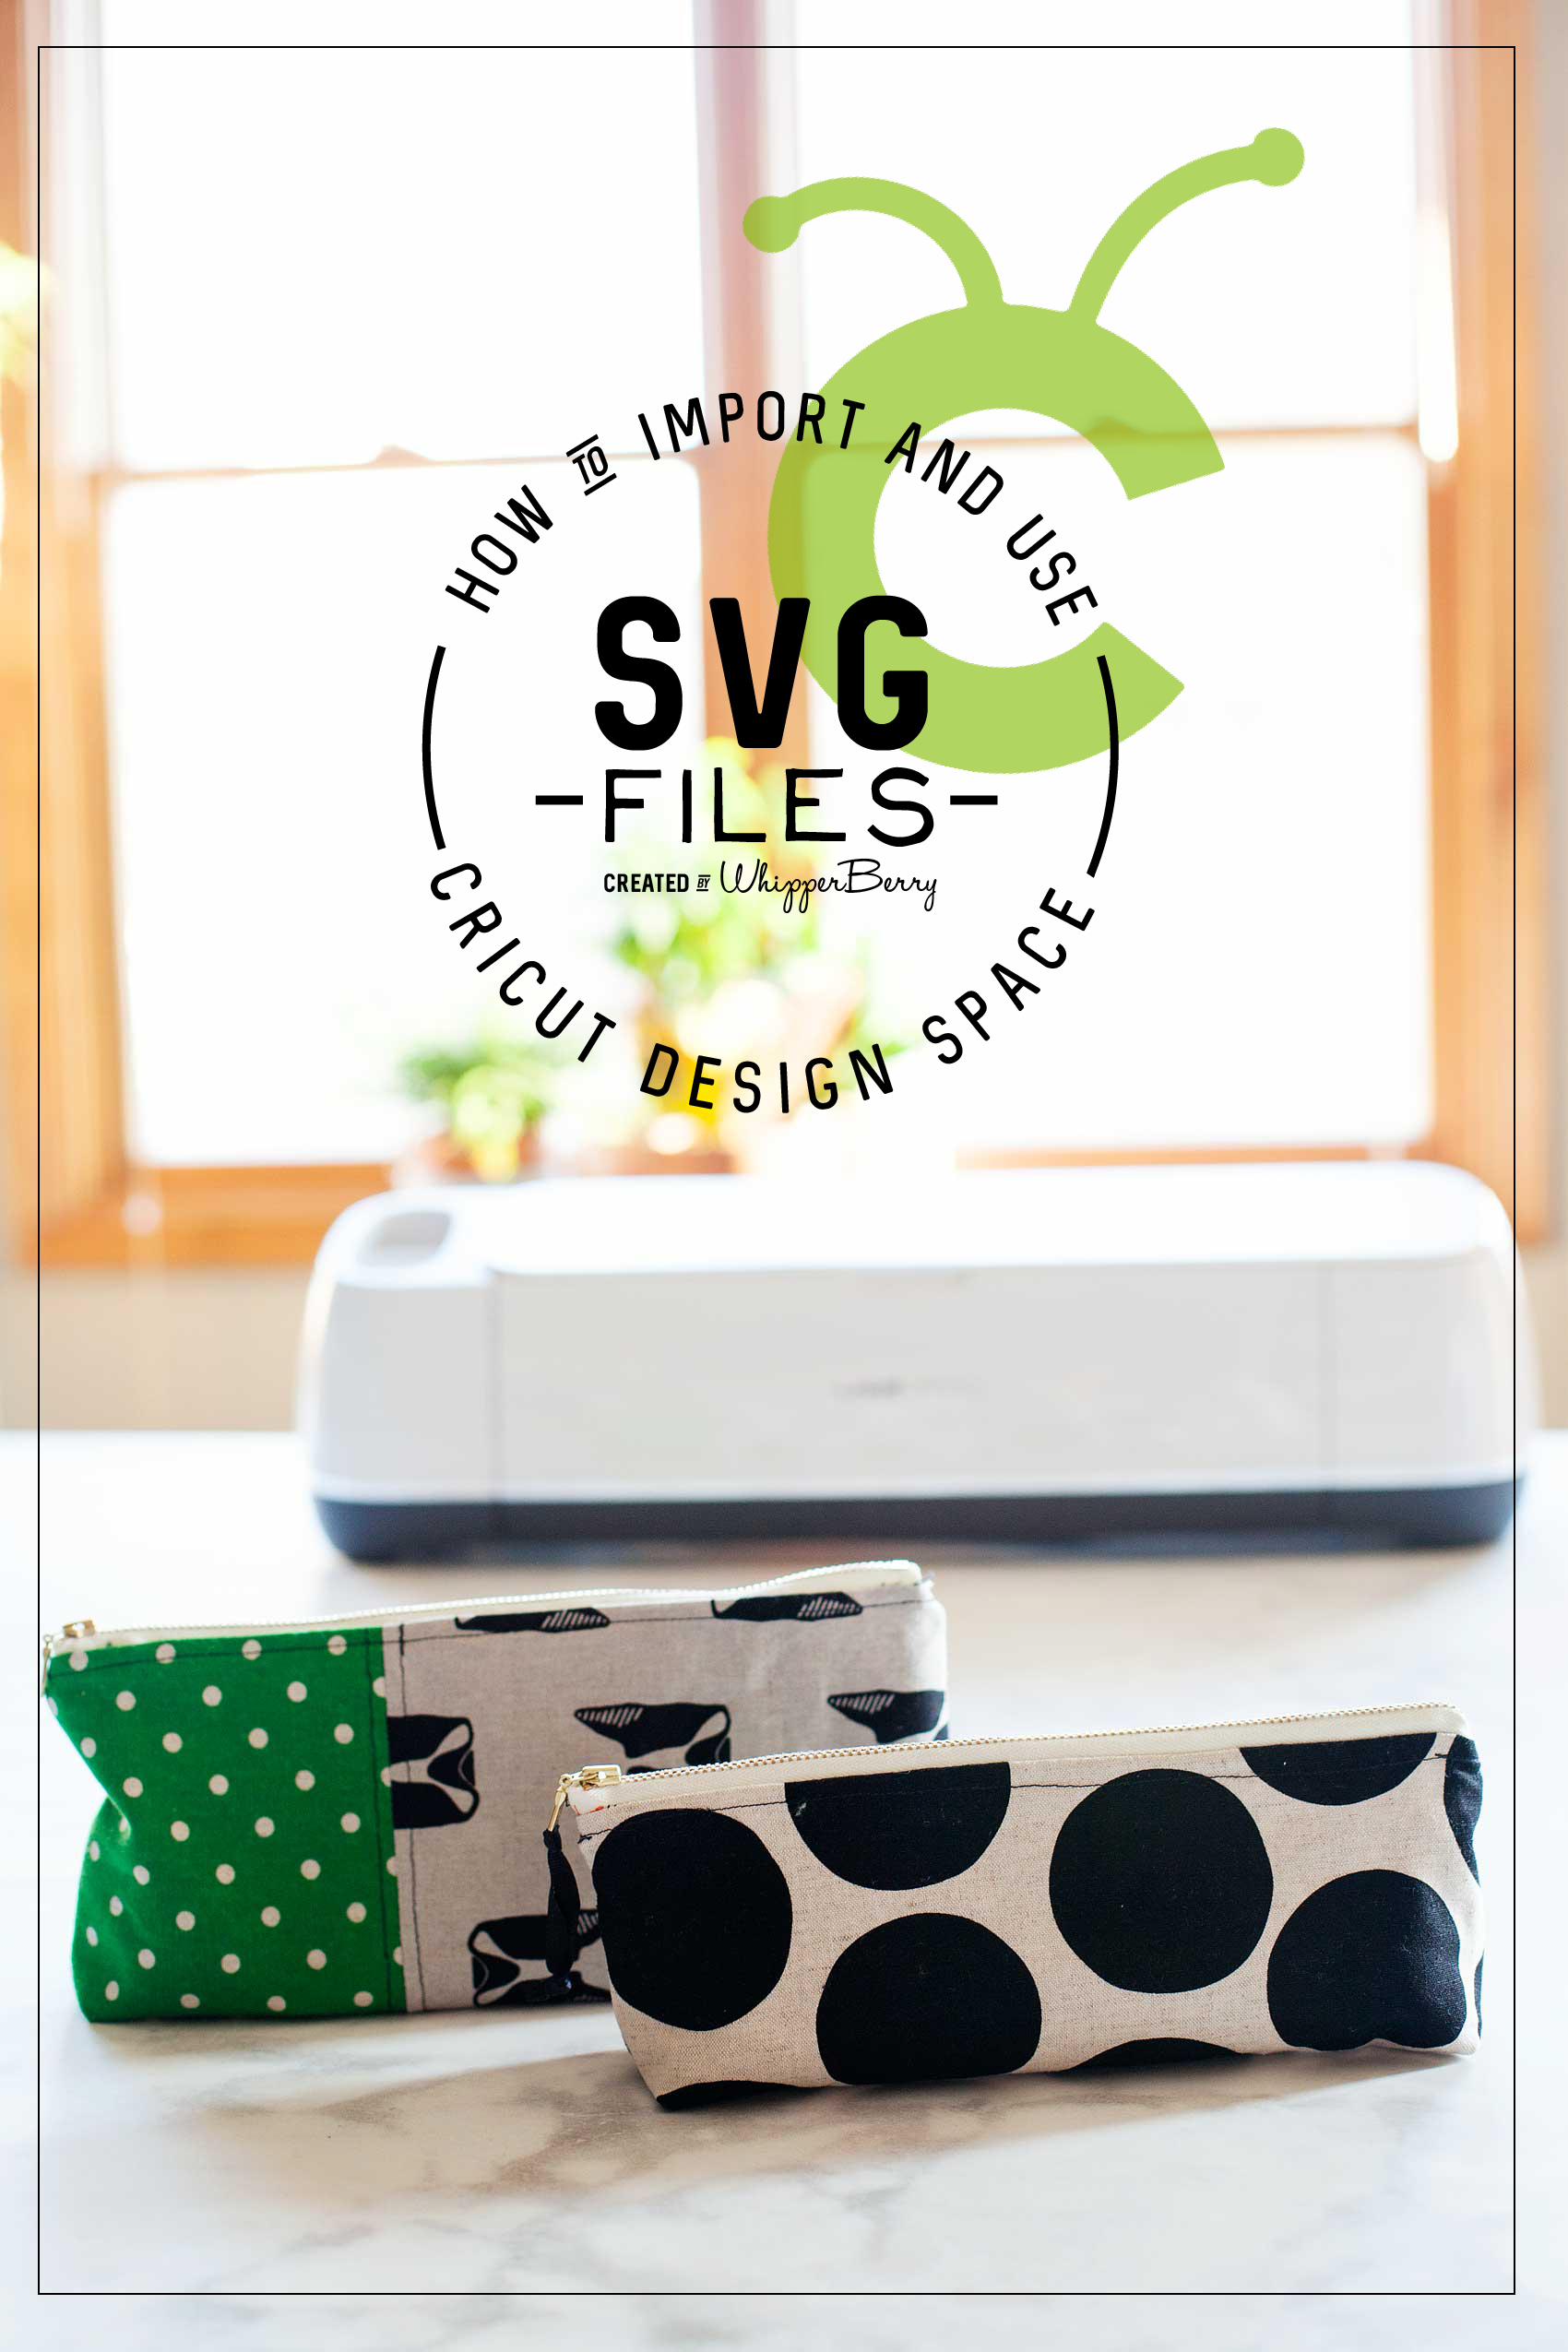 Whether you are a sign maker, a paper crafter or you love to work with fabric, chances are you've wanted to either create your own SVG files or download files that you've purchased and use them with your Cricut Projects Here's a great video tutorial on how to import your own SVG files into Cricut Design Space and how to easily use it in the software.